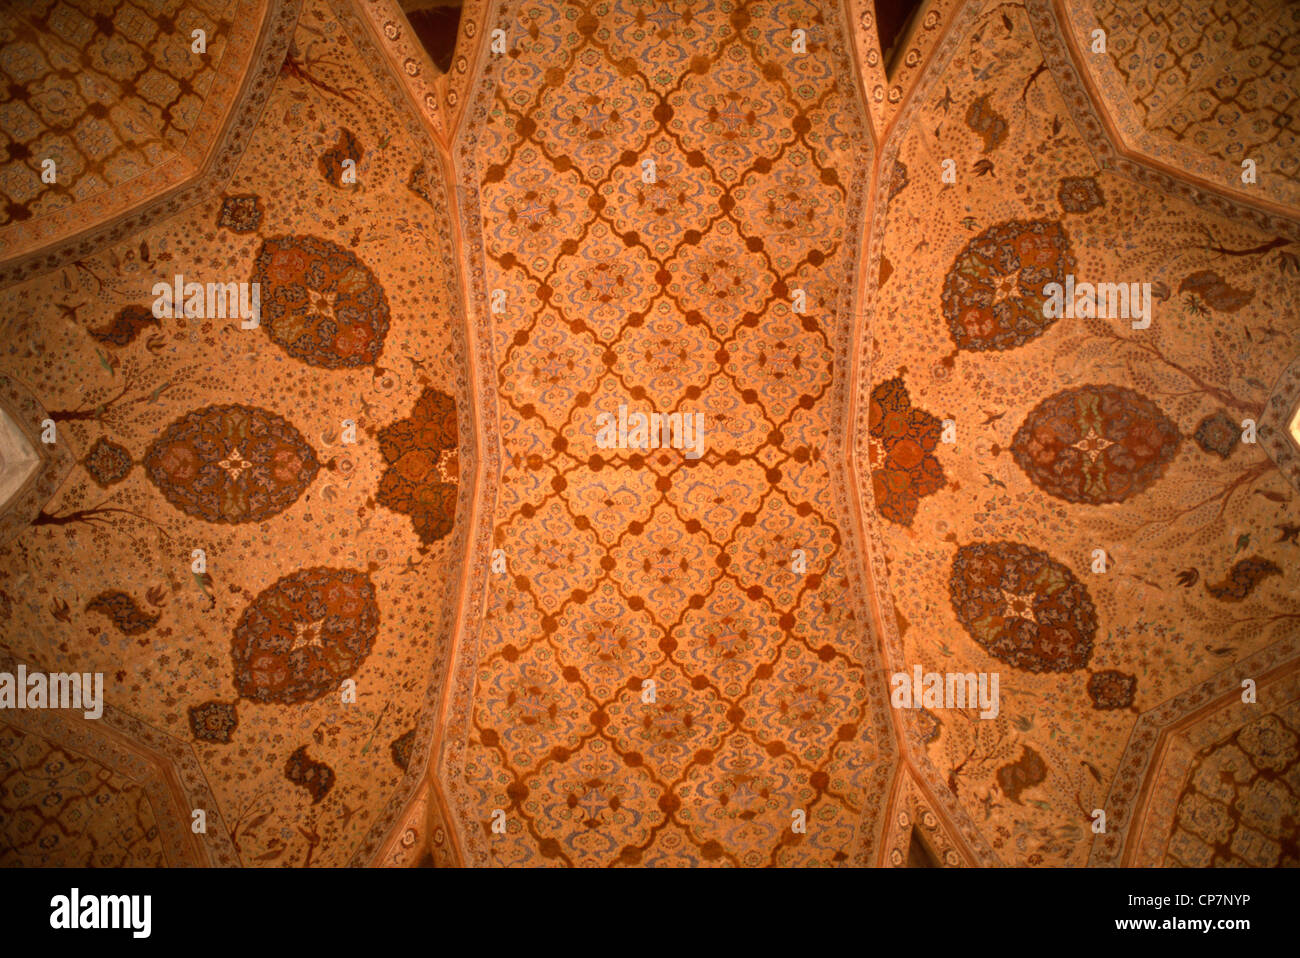 Iran, Esfahan, Isfahan, Ali Qapu Palace, interior, painted ceiling, Stock Photo